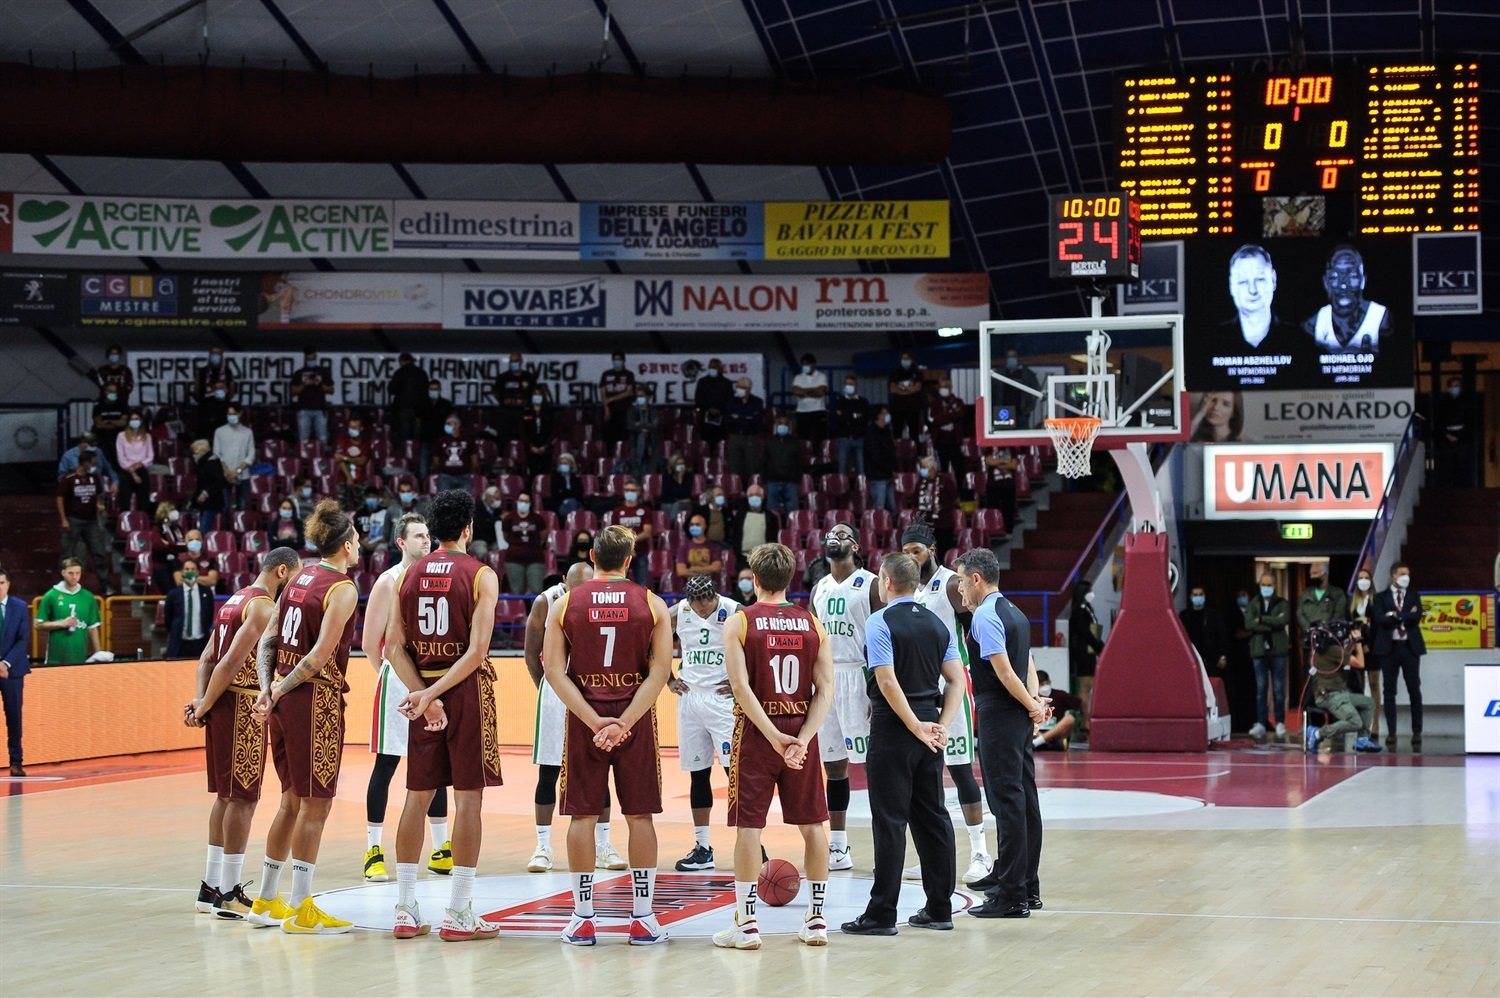 Moment of Silence - Umana Reyer Venice (photo Reyer) - EC20